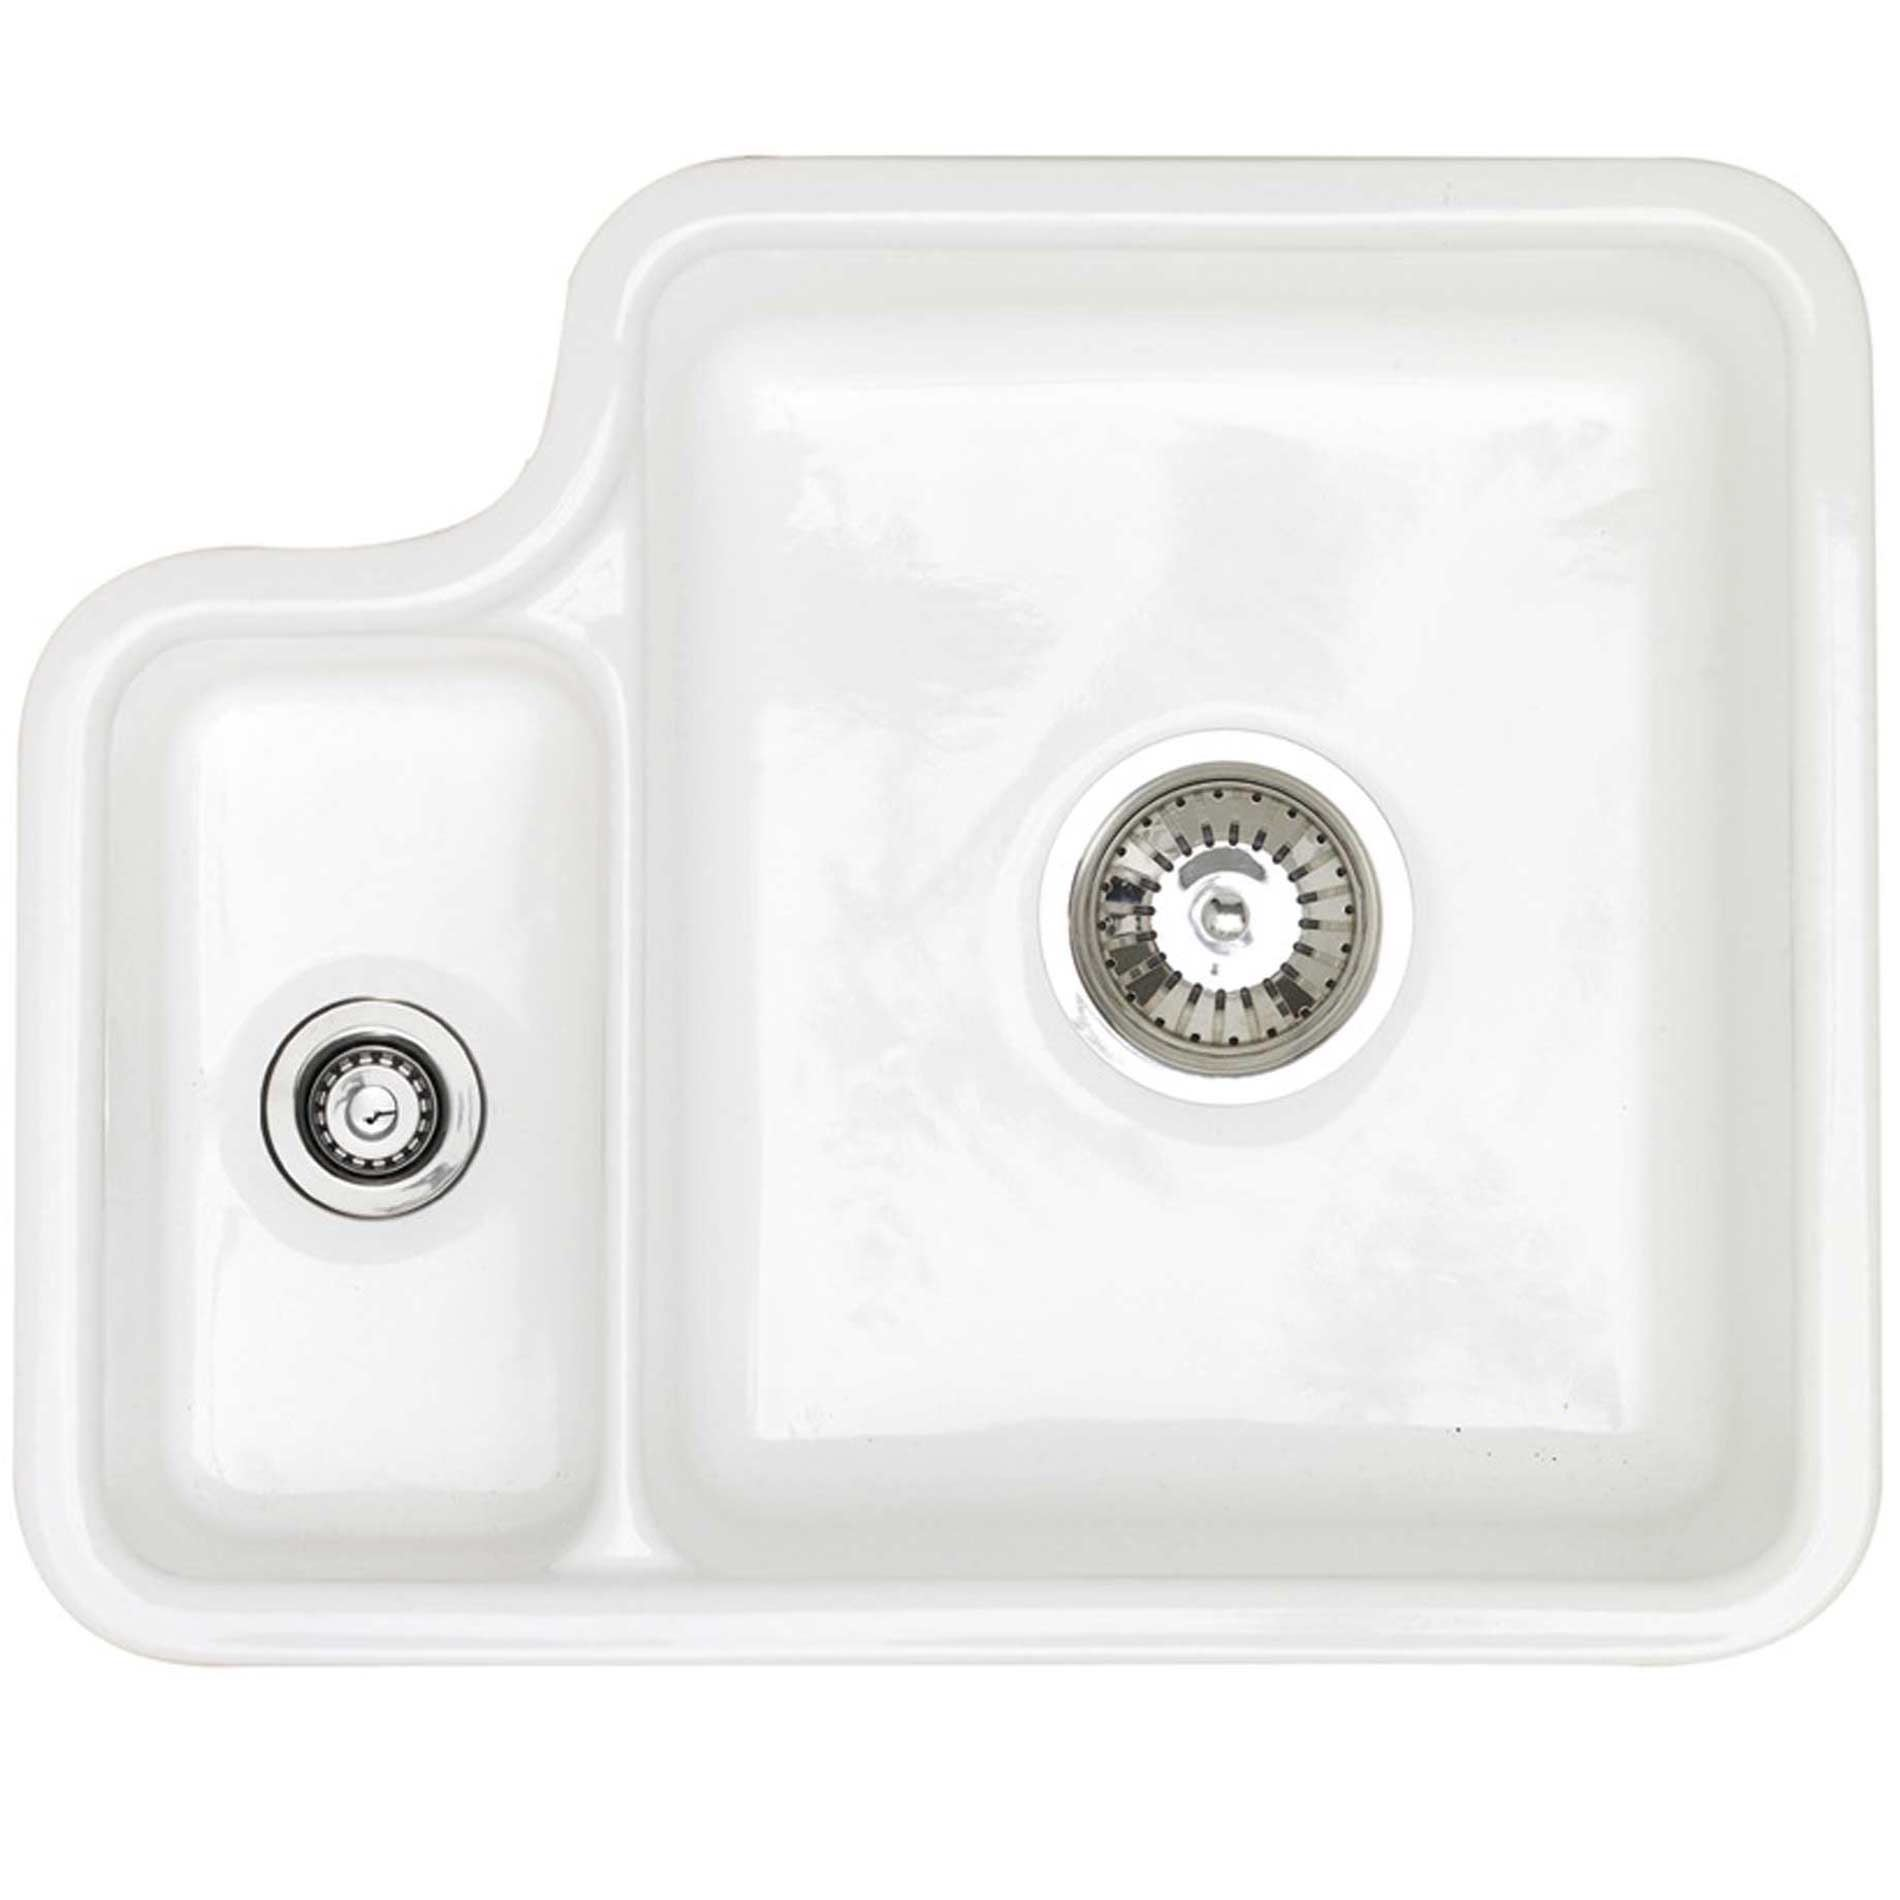 Astracast Kitchen Sinks Astracast lincoln 1 5 white ceramic sink kitchen sinks taps picture of lincoln 1 5 white ceramic sink workwithnaturefo